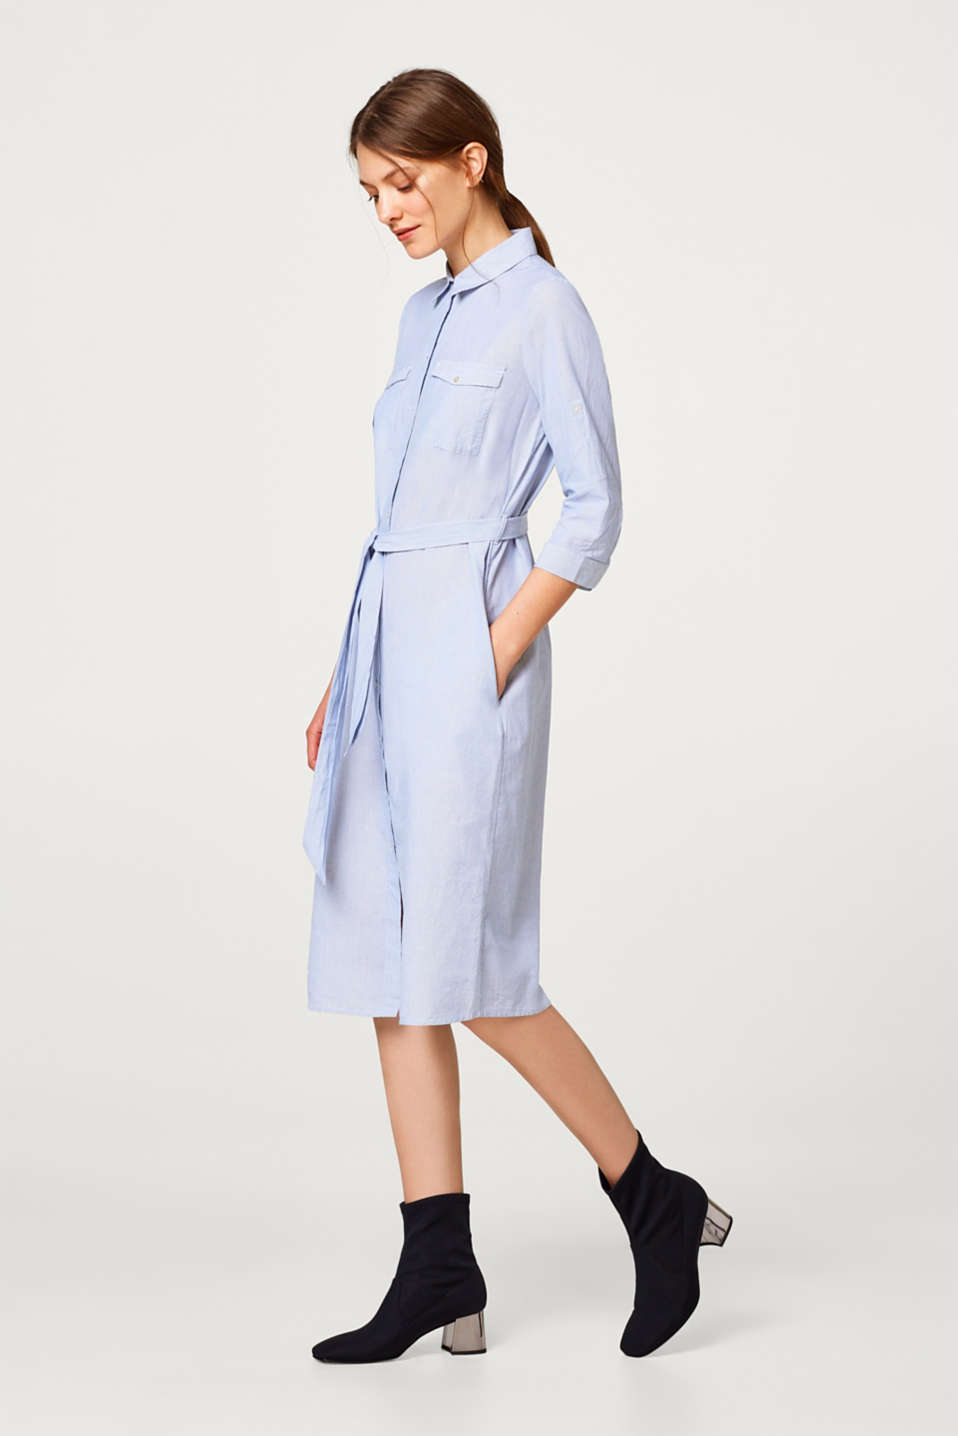 Shirt dress made of 100% cotton